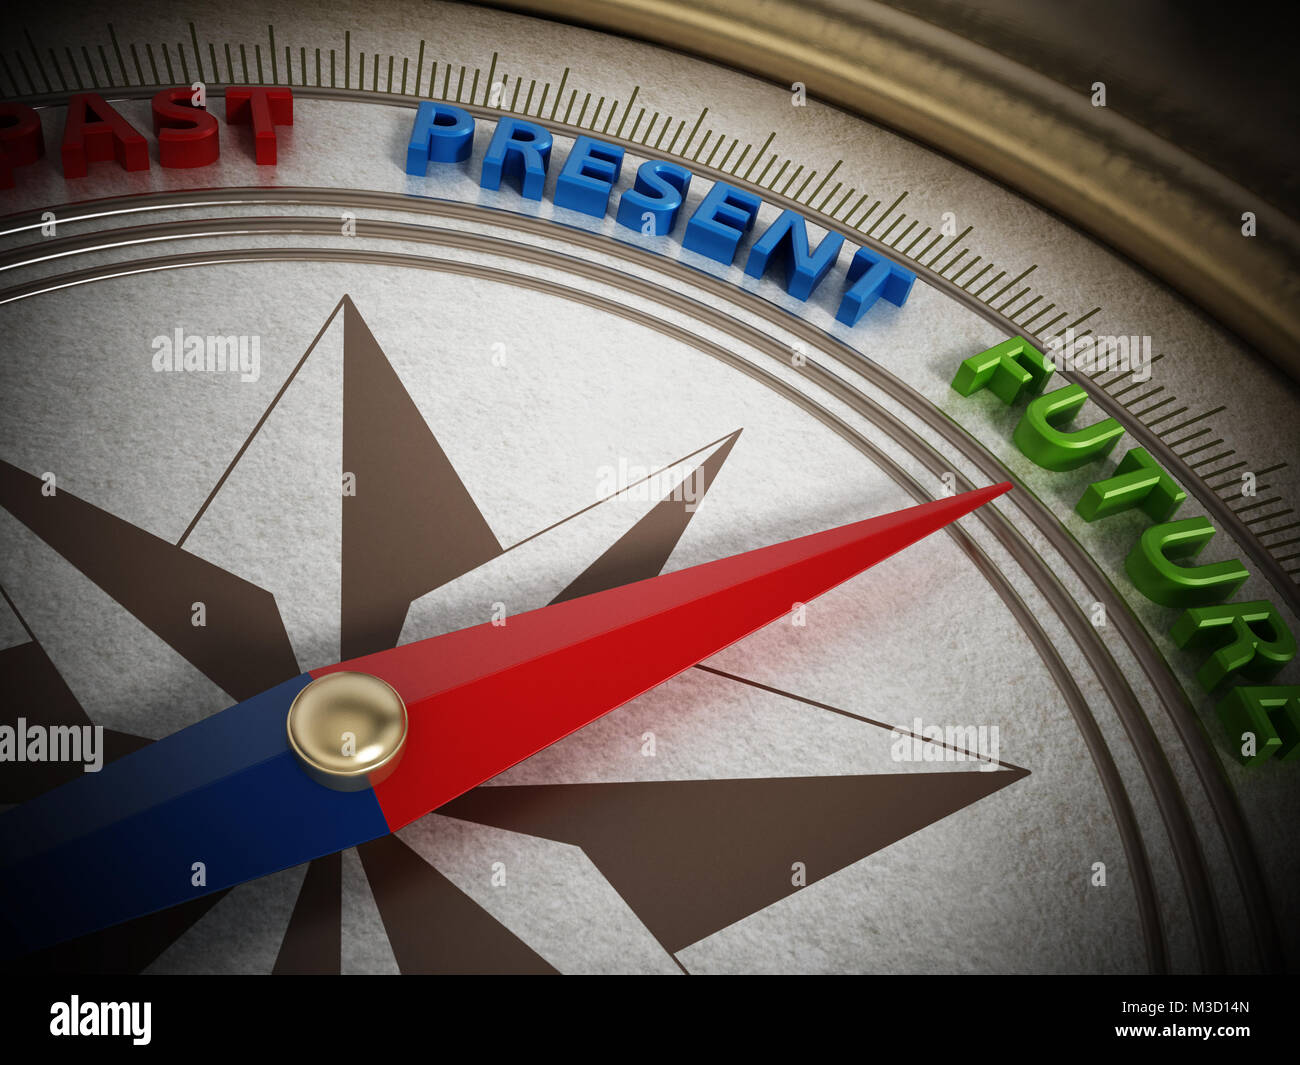 Compass needle pointing future among past and present. 3D illustration. - Stock Image